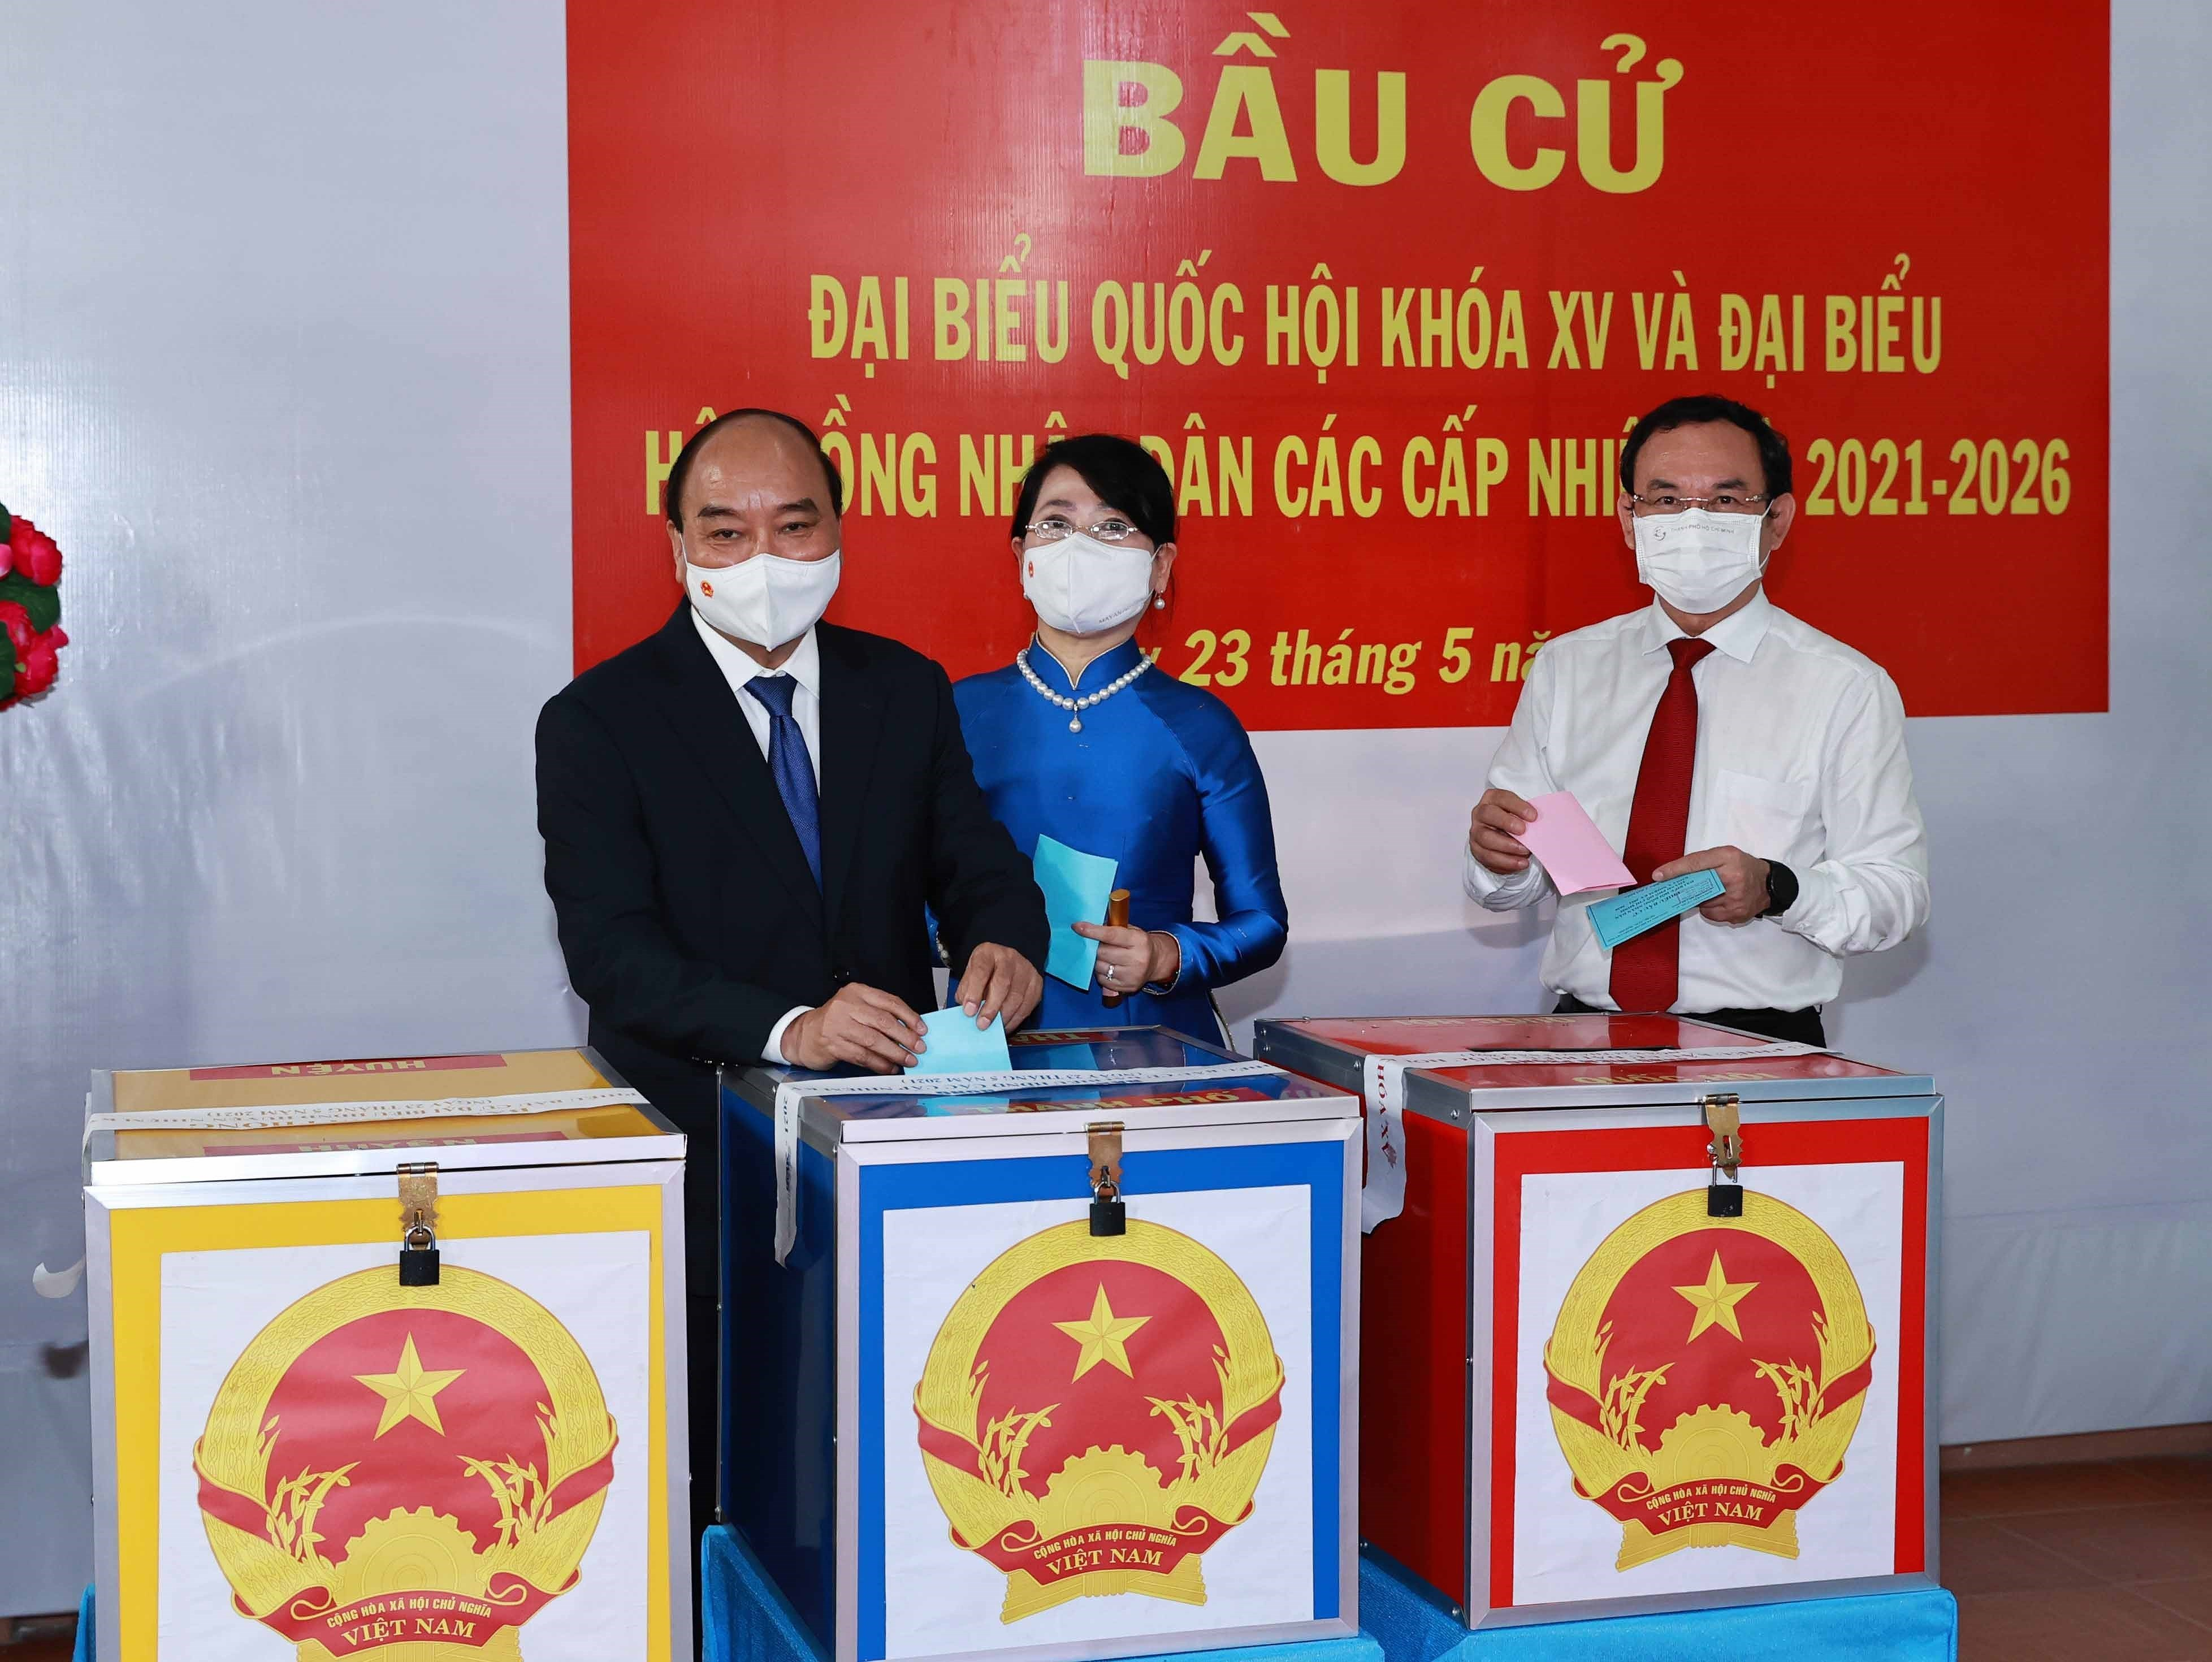 Voters nationwide cast ballots hinh anh 8